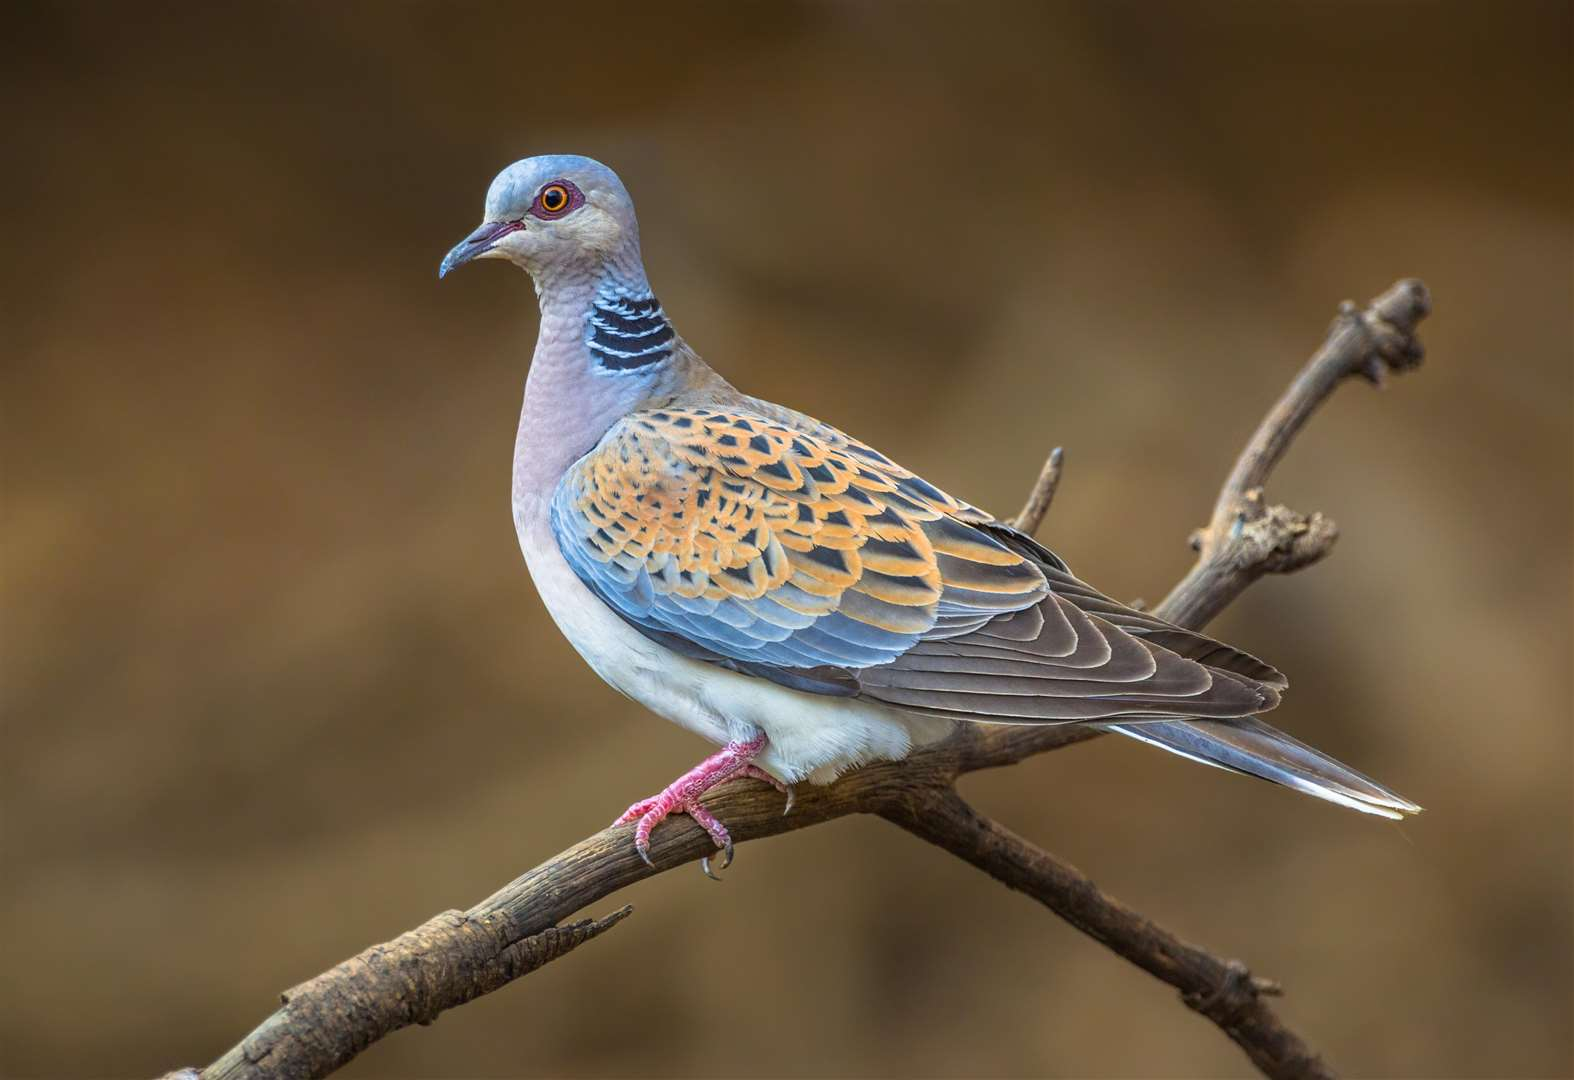 Sanger Institute completes sequencing of turtle dove and robin genomes